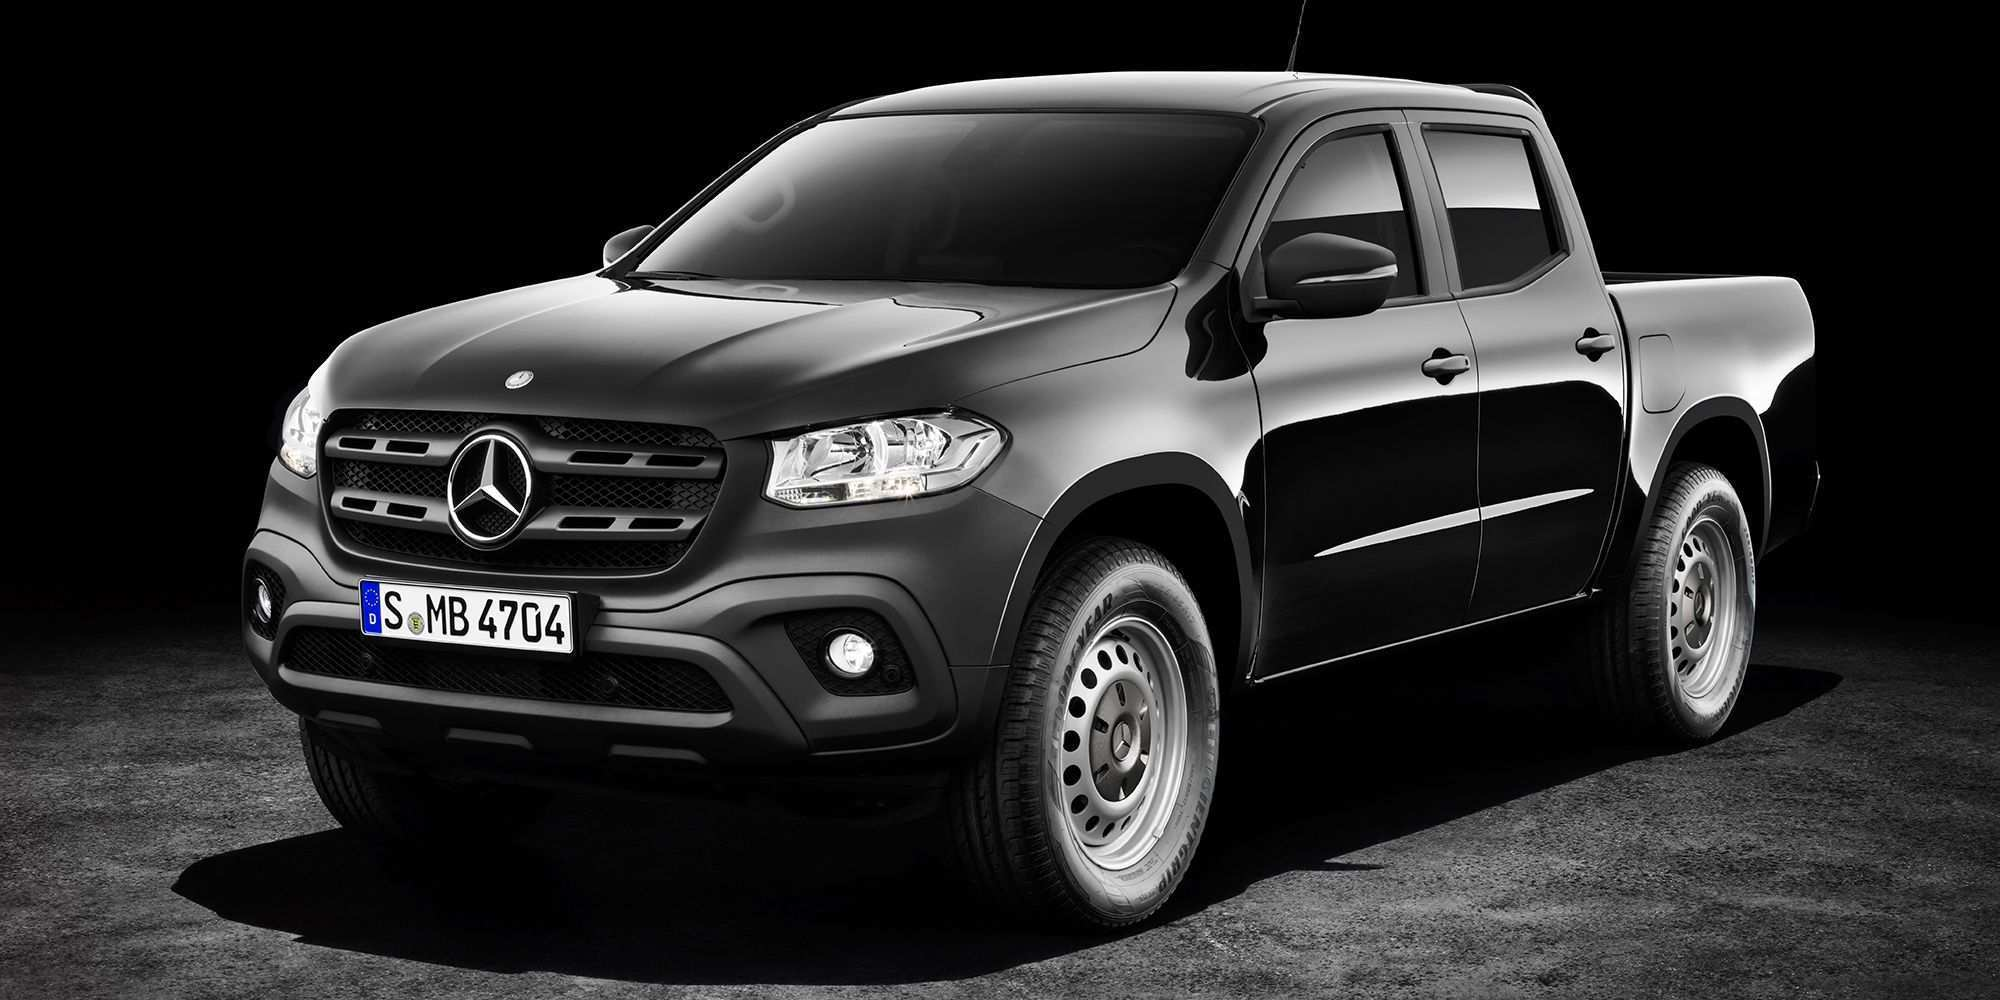 89 Best Review 2020 Mercedes Benz X Class Specs and Review for 2020 Mercedes Benz X Class